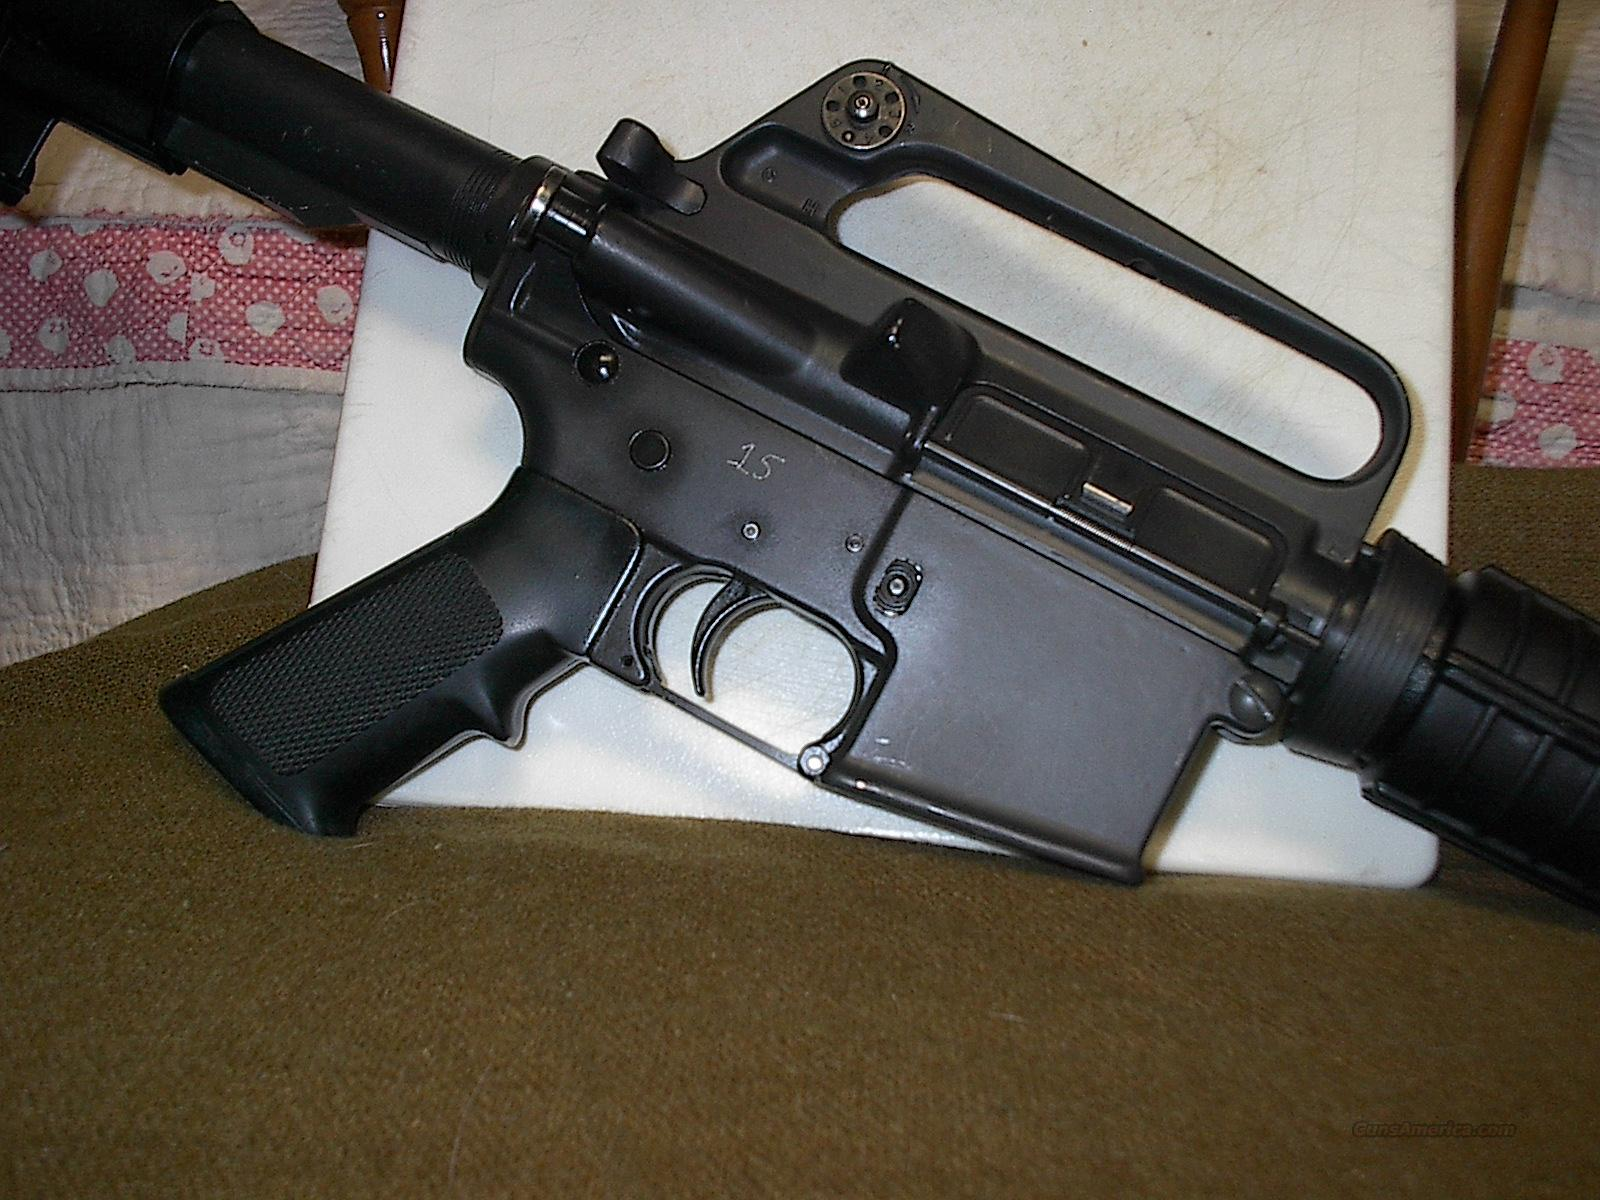 Colt AR15 Sporter II Shorty - California Prison System  Guns > Rifles > Colt Military/Tactical Rifles